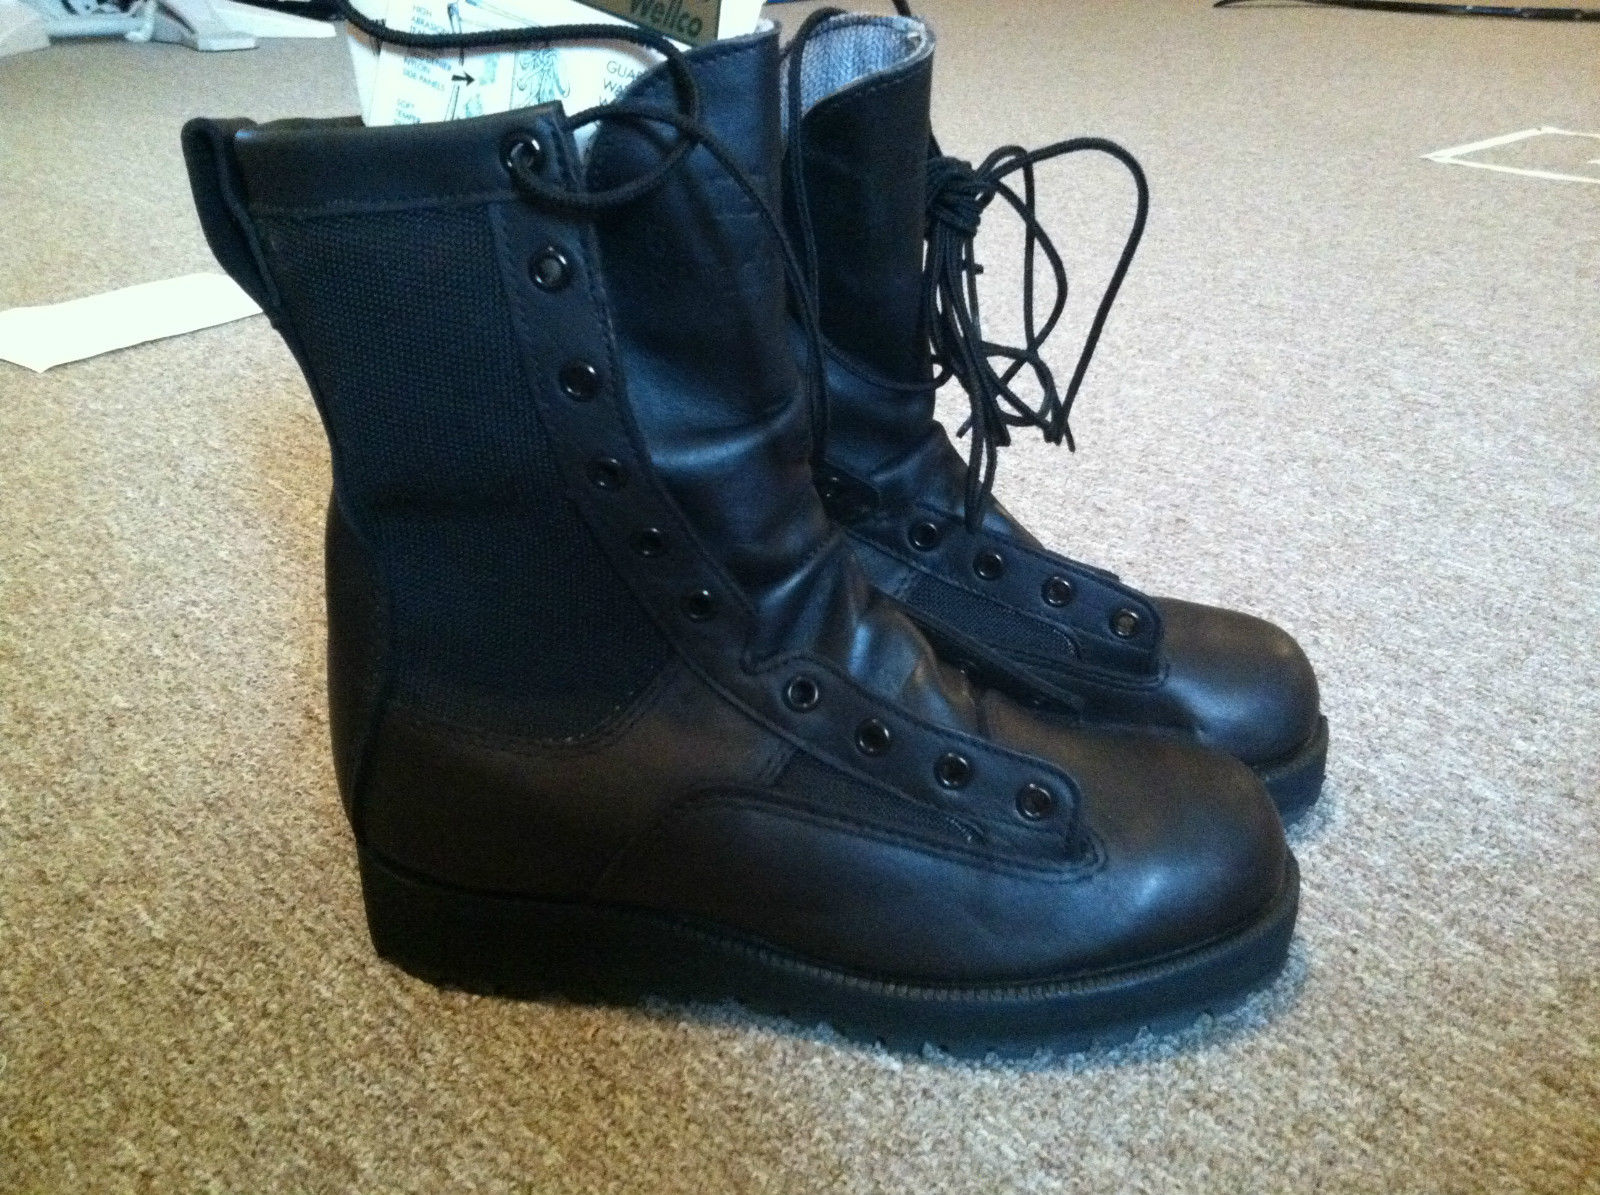 Wellco Black Combat Boots Infantry NWT 5W, Military